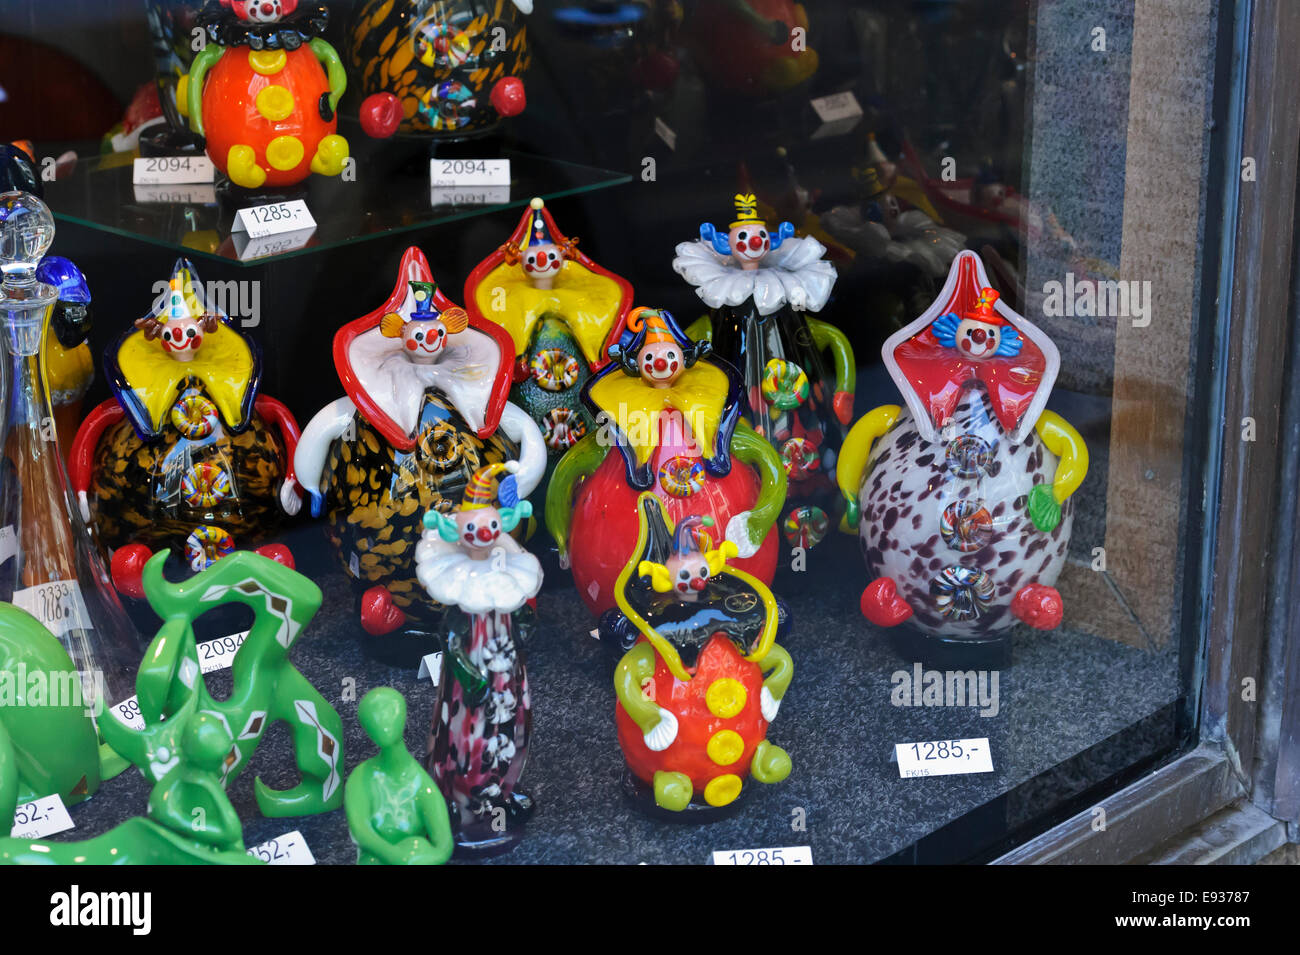 A collection of colourful clown ornaments for sale on